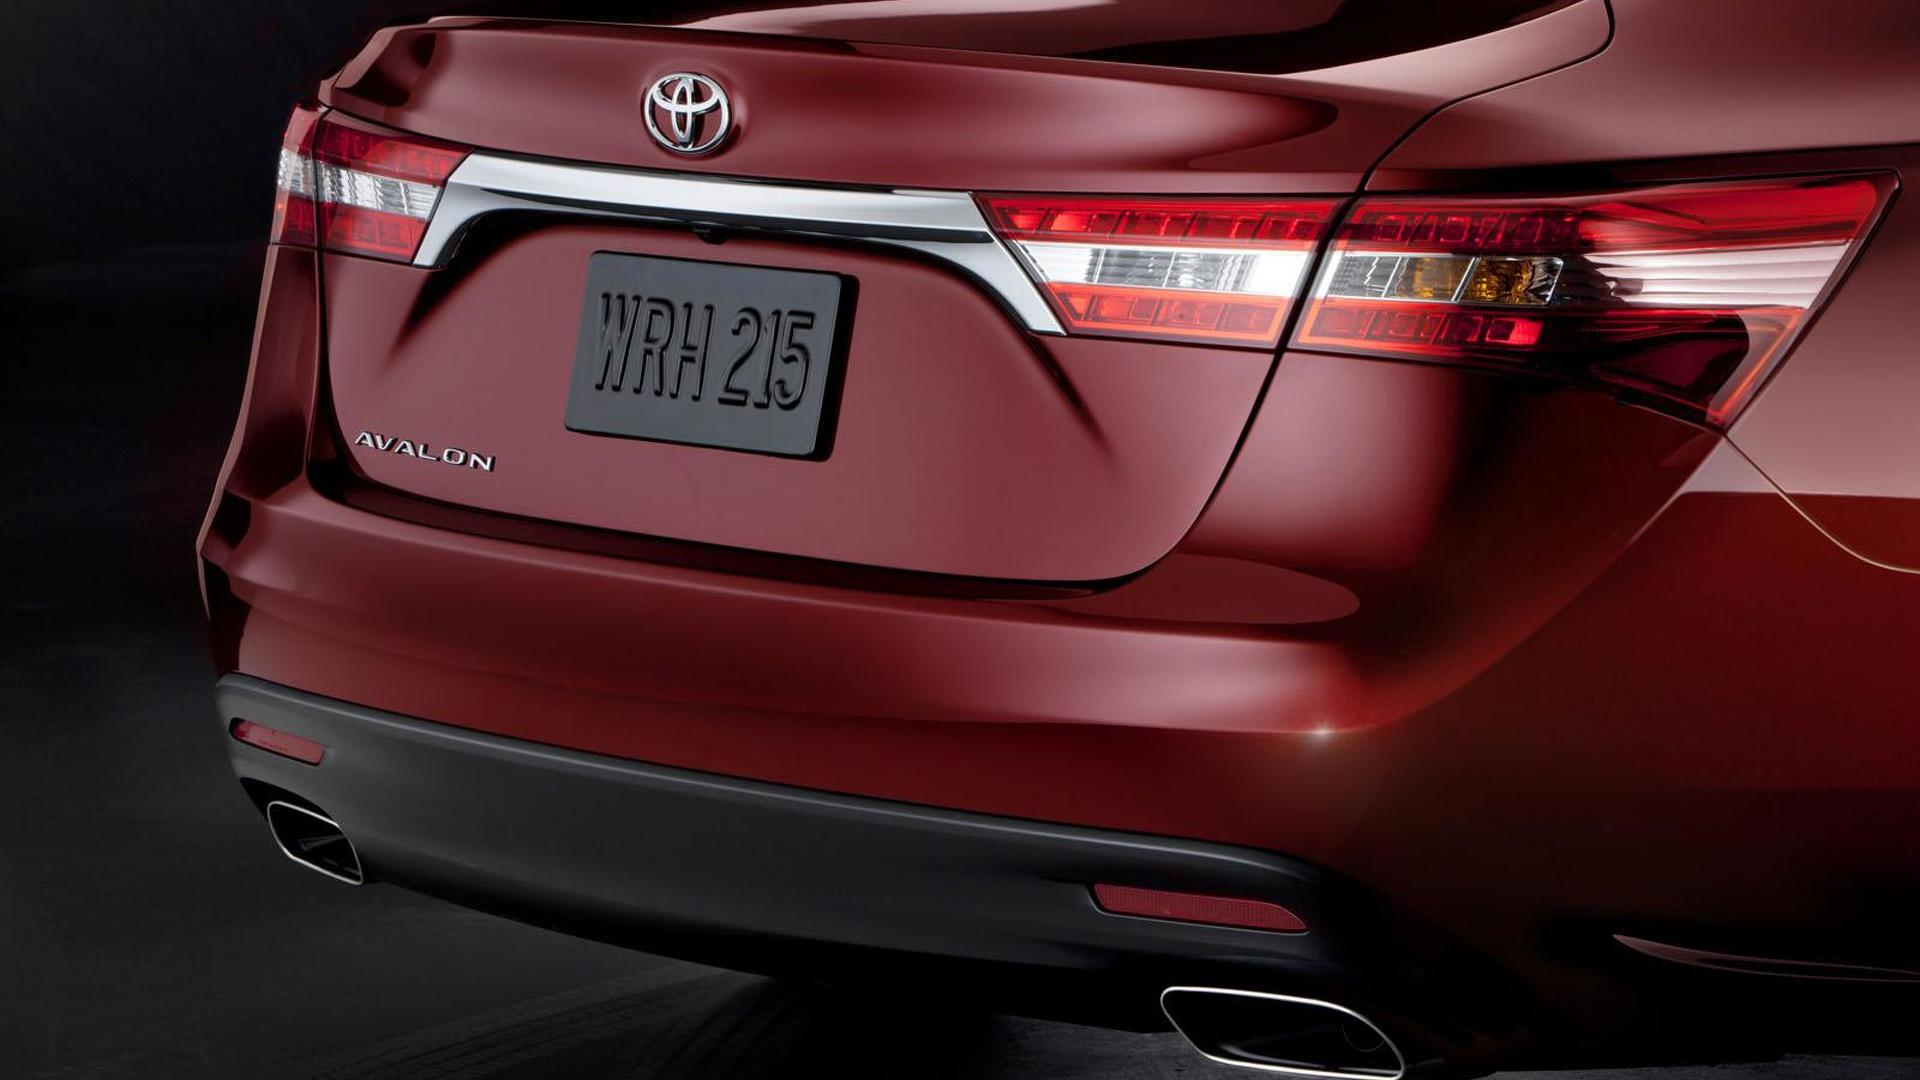 2013 Toyota Avalon first car to offer wireless charging ...